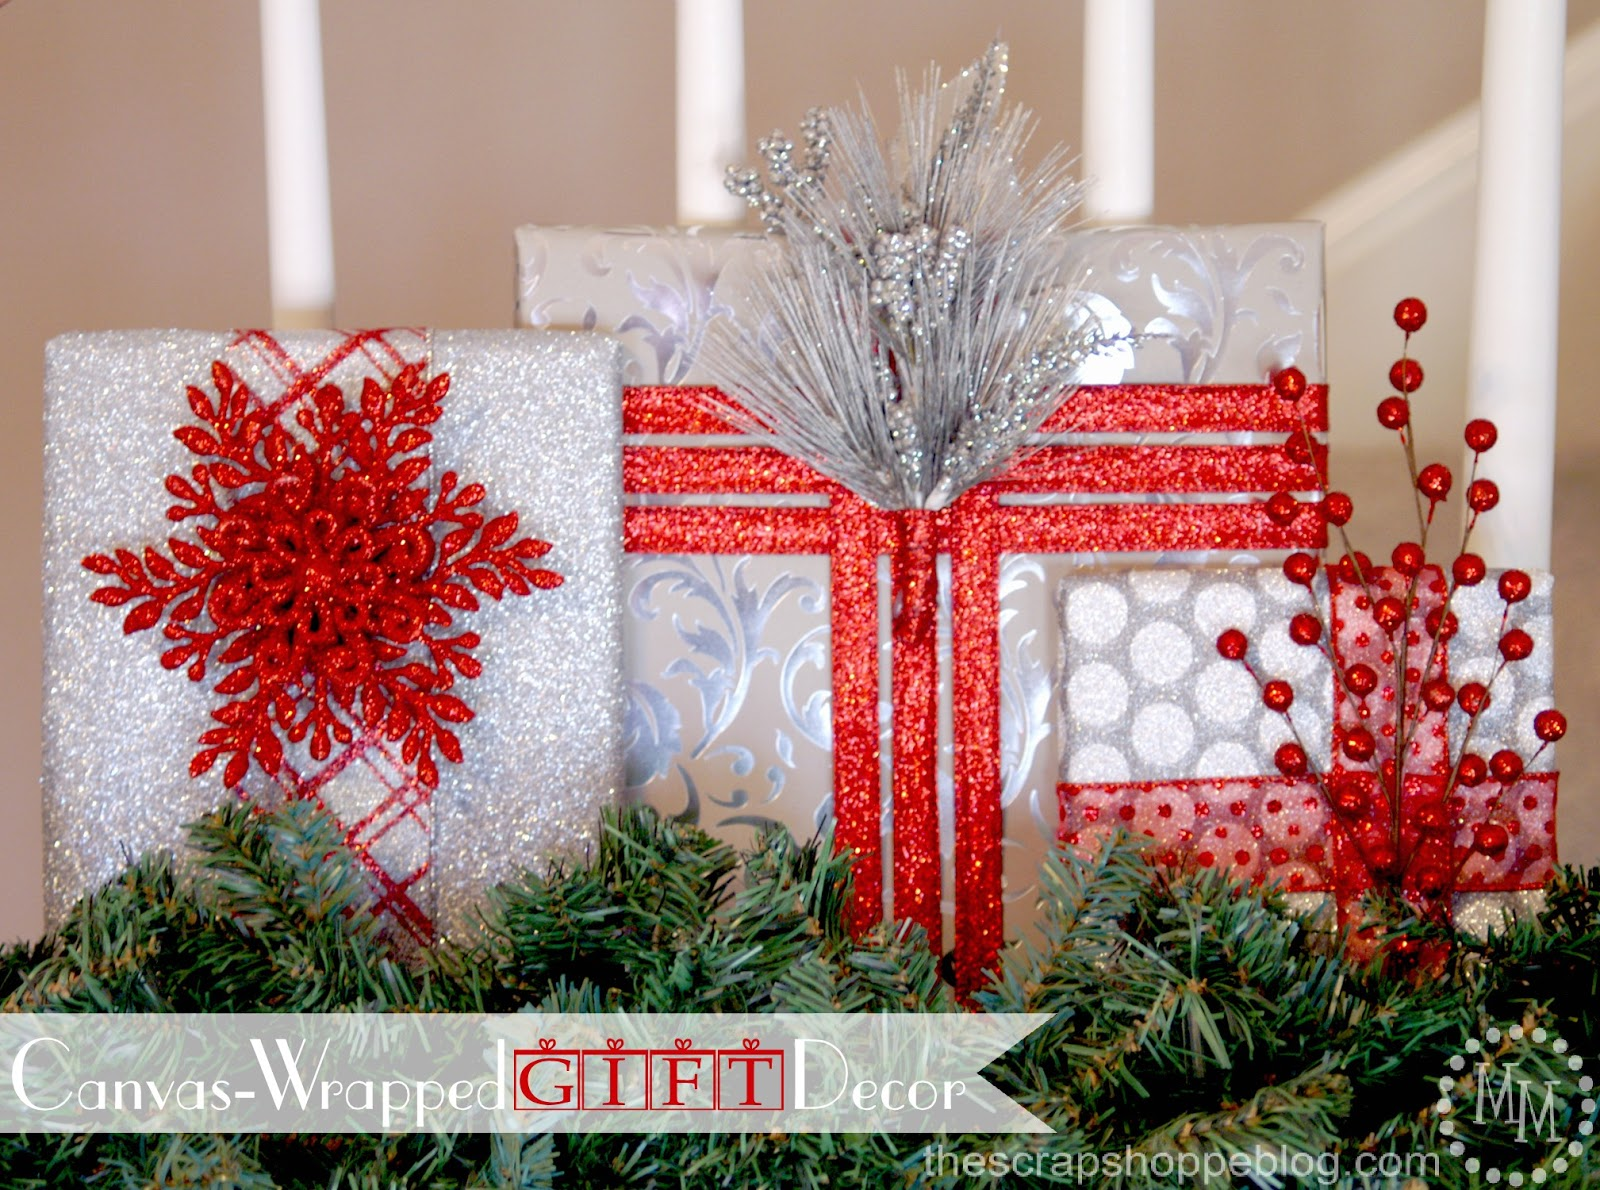 faux wrapped presents decorations - Christmas Gift Decorations